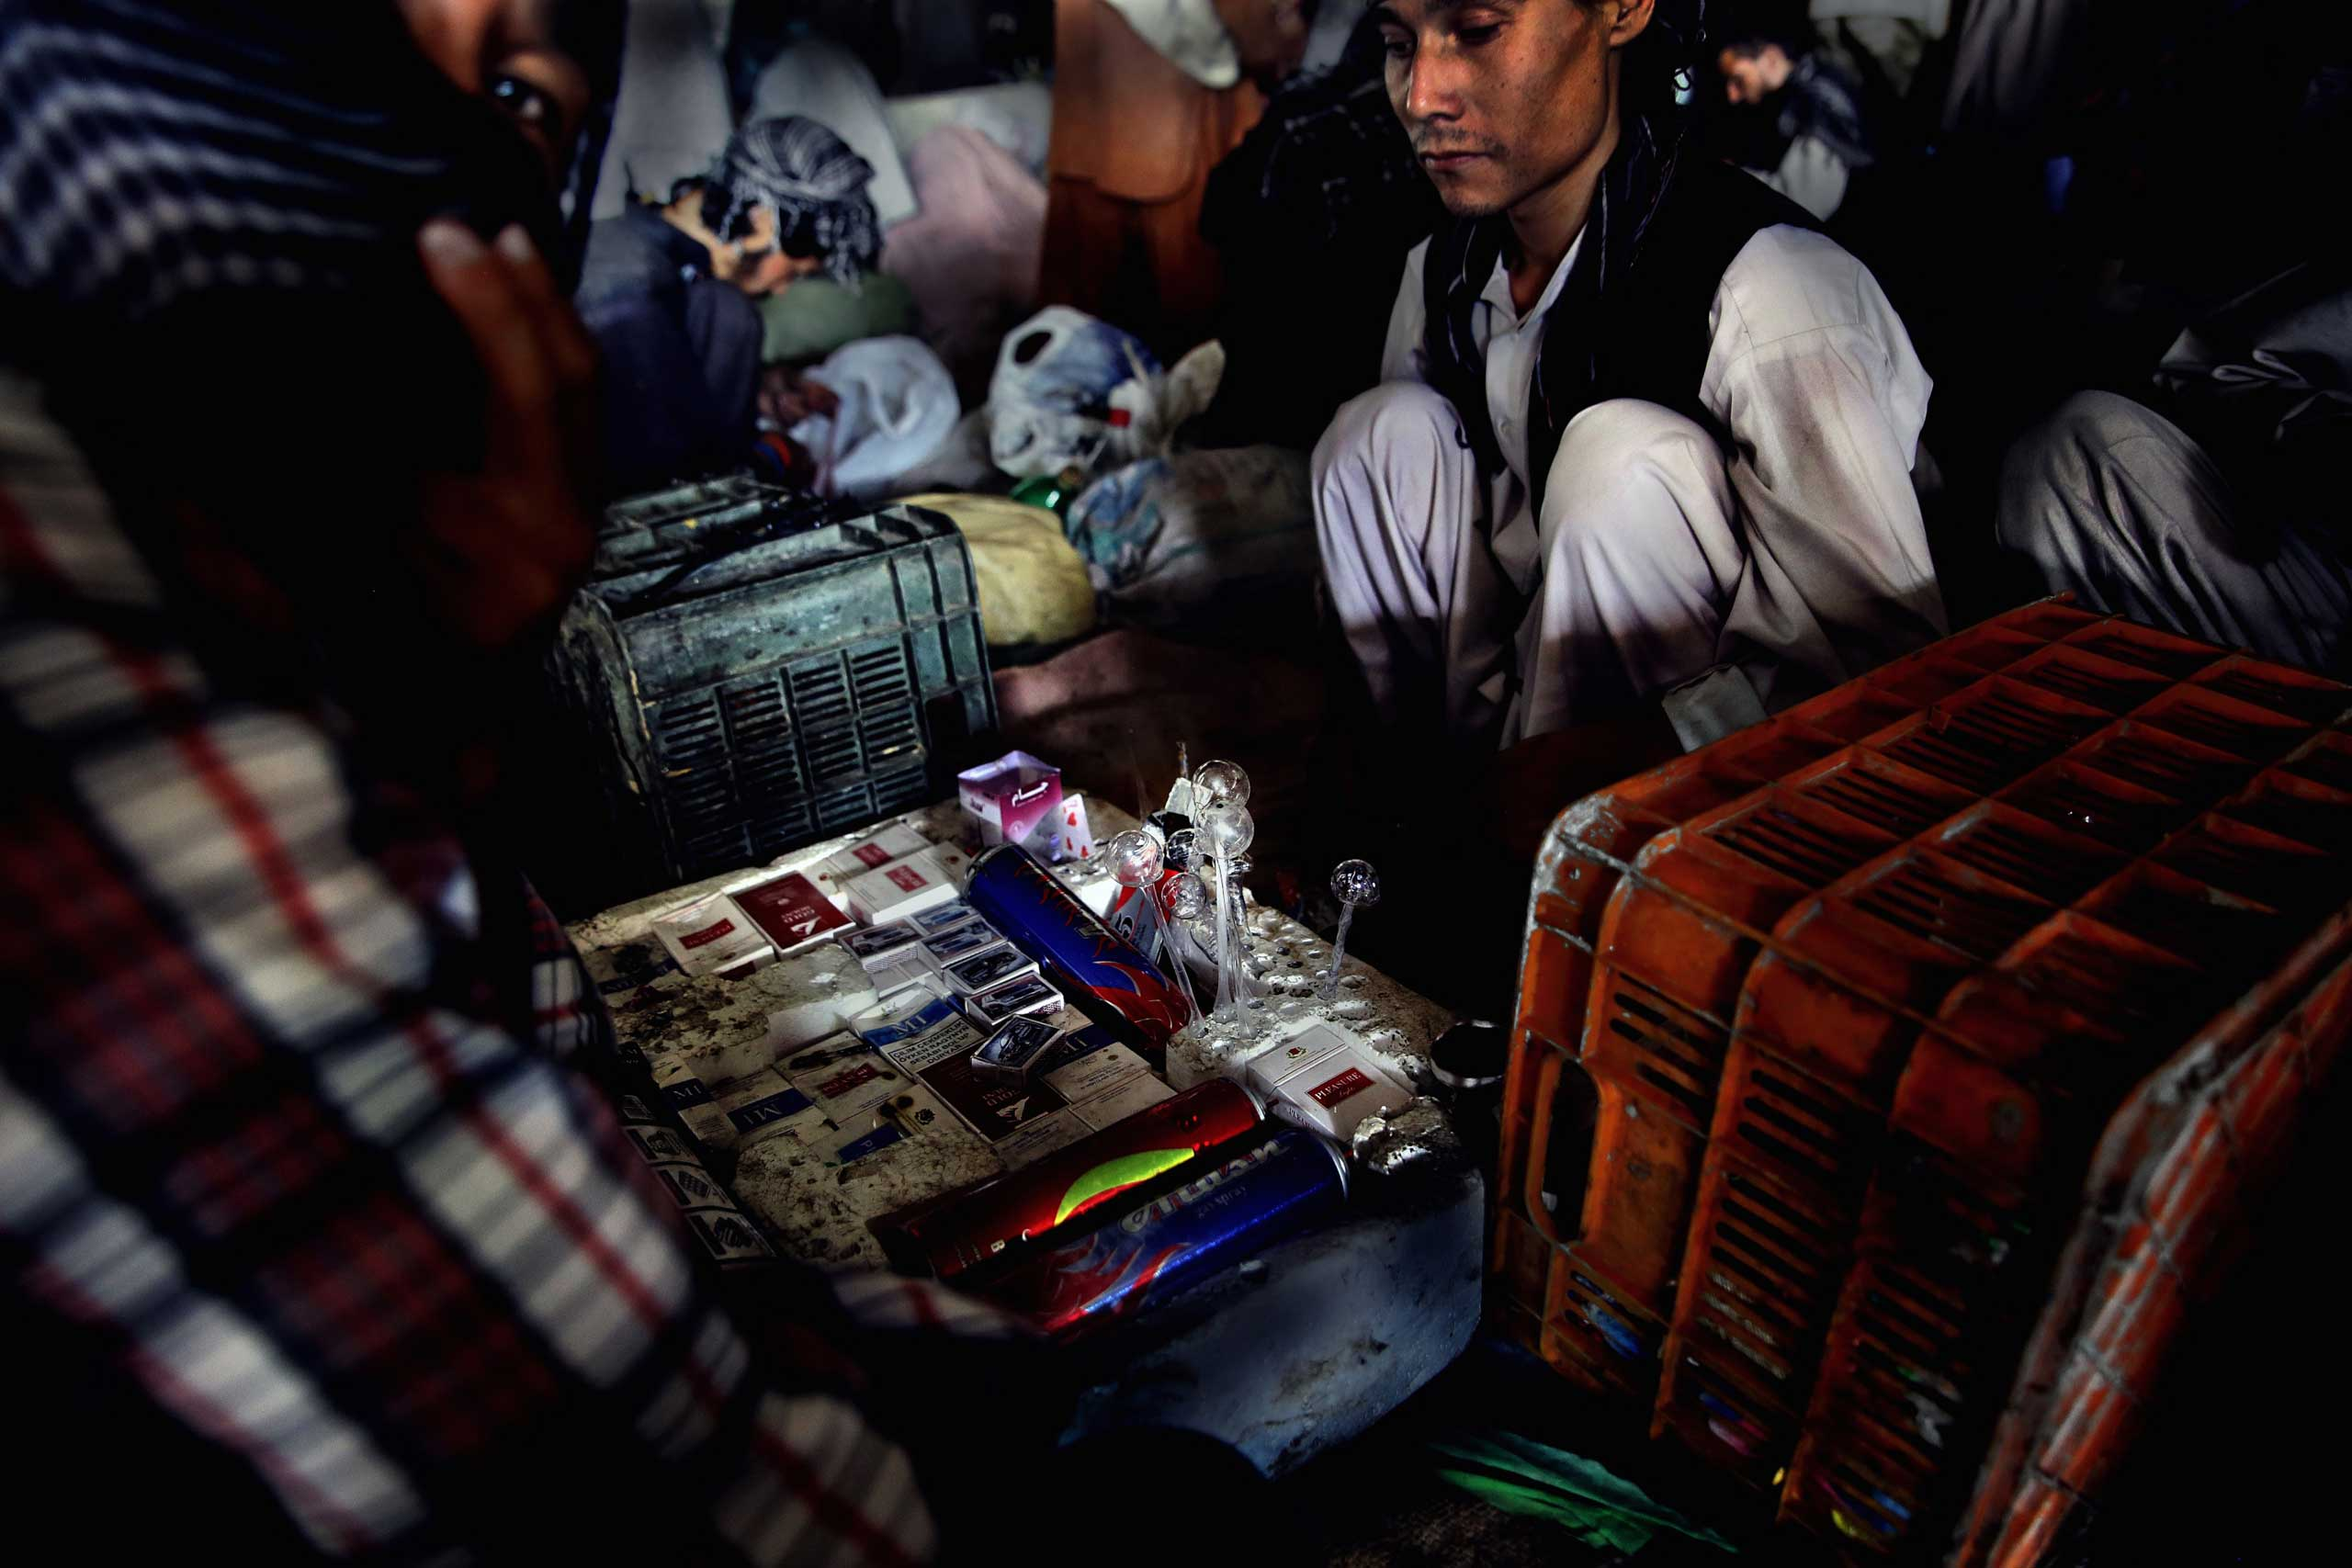 A community has formed under the Pul-e Sukhta bridge with addicts and dealers operating and often living in close quarters on Aug. 26, 2014.